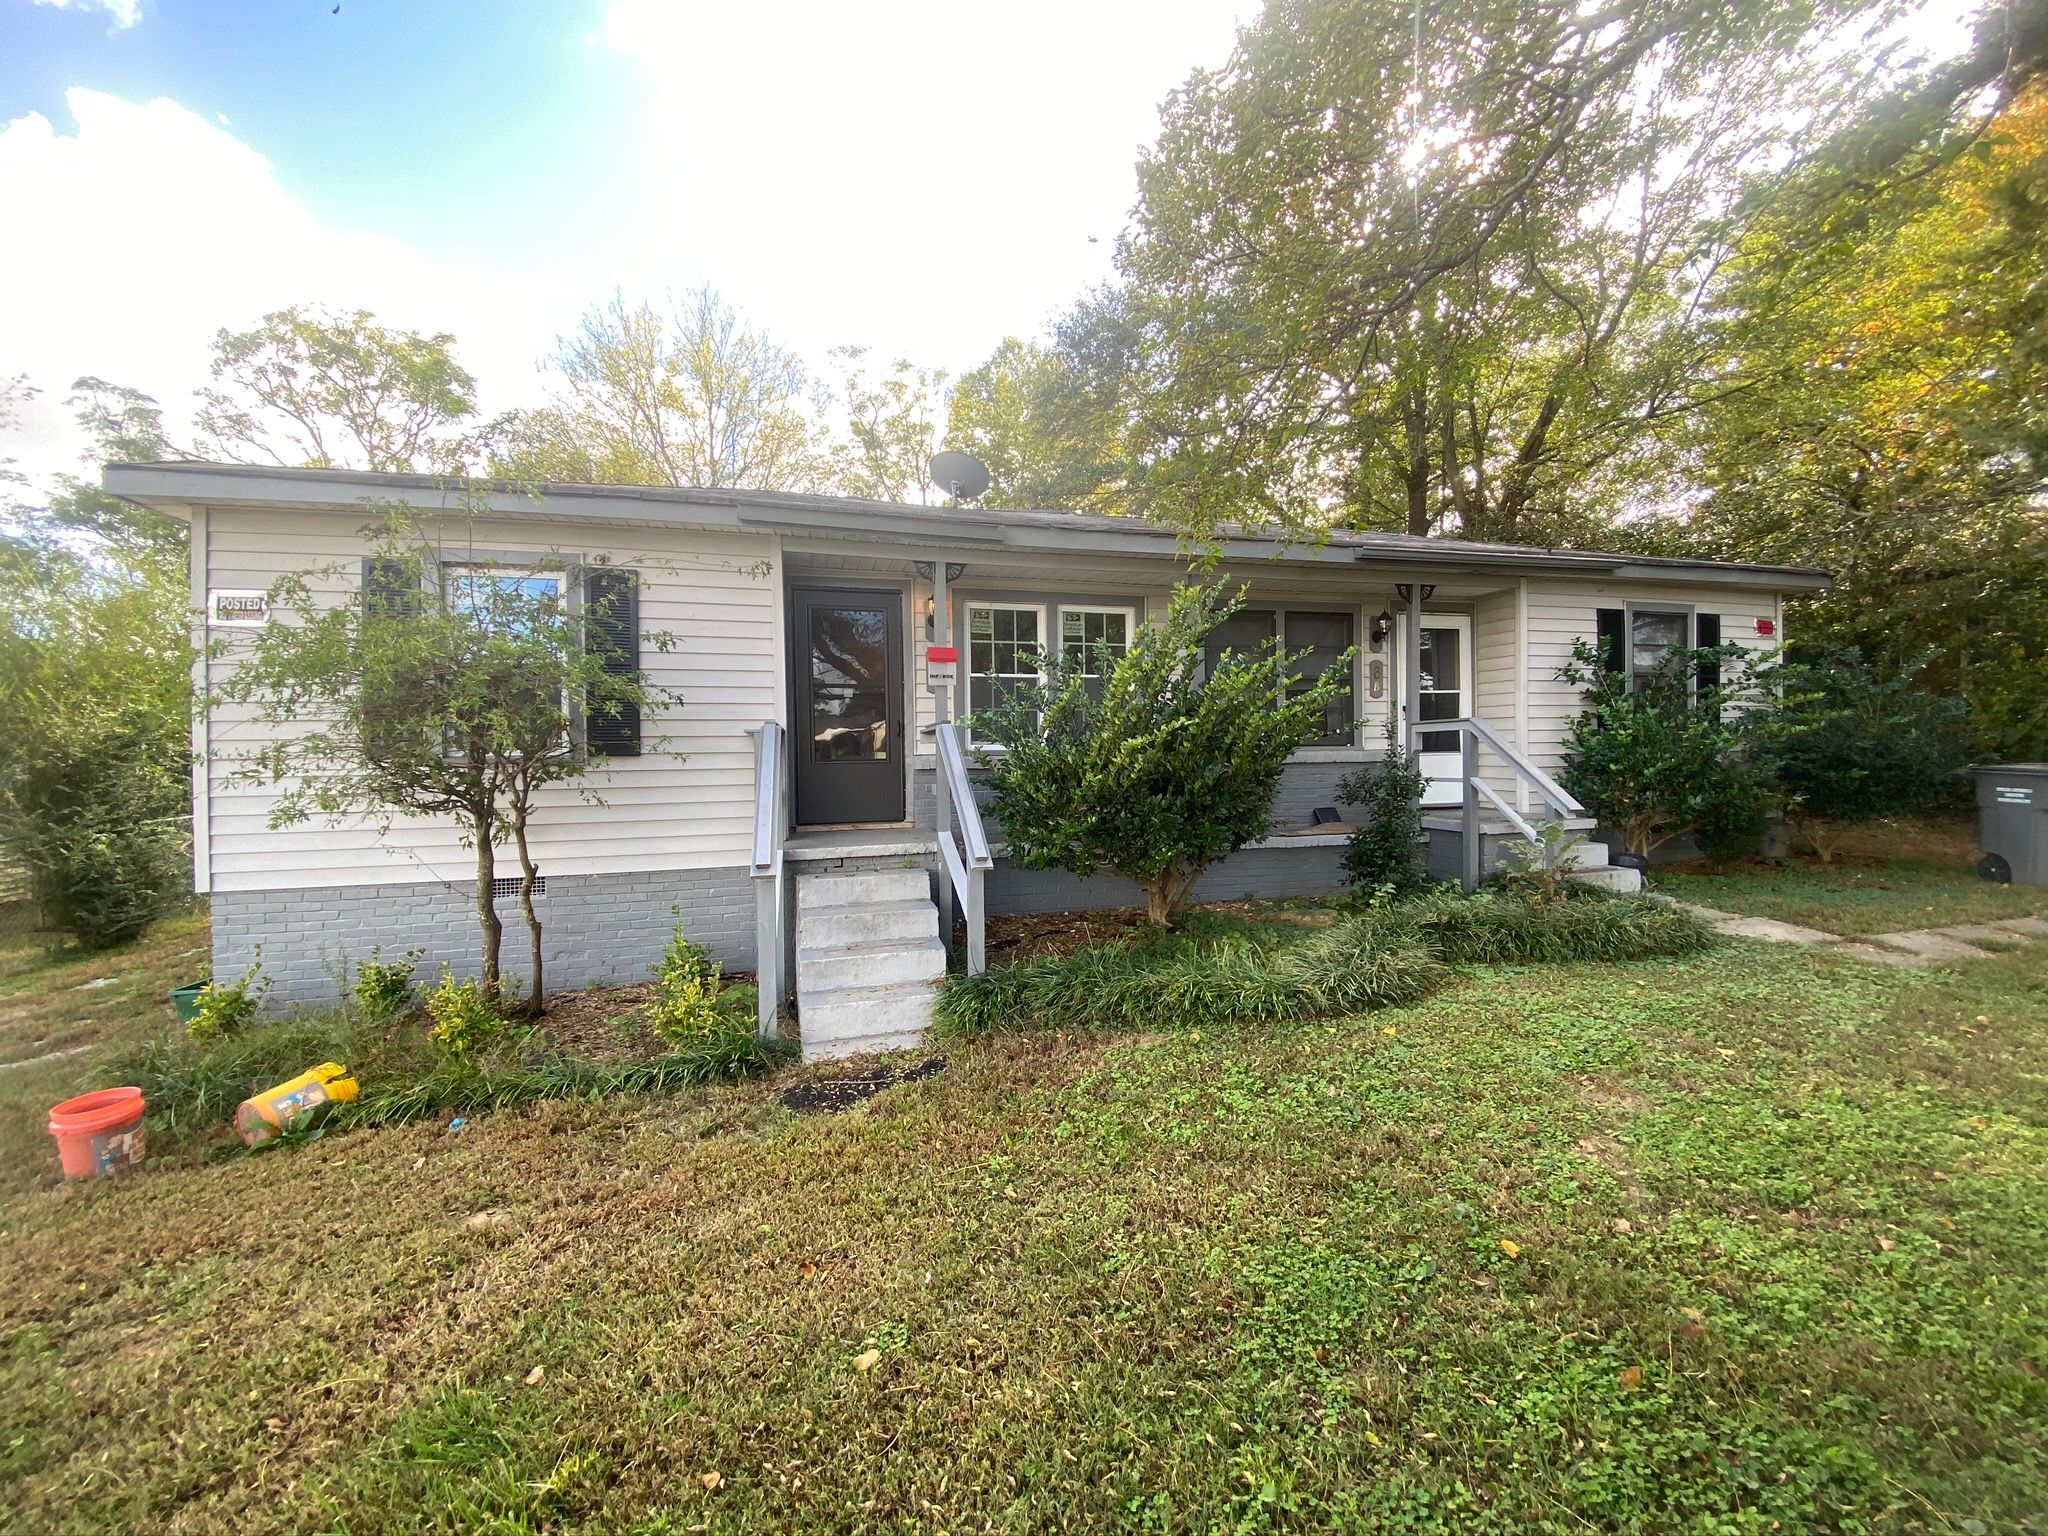 6-A Lanford Dr., Greenville, SC